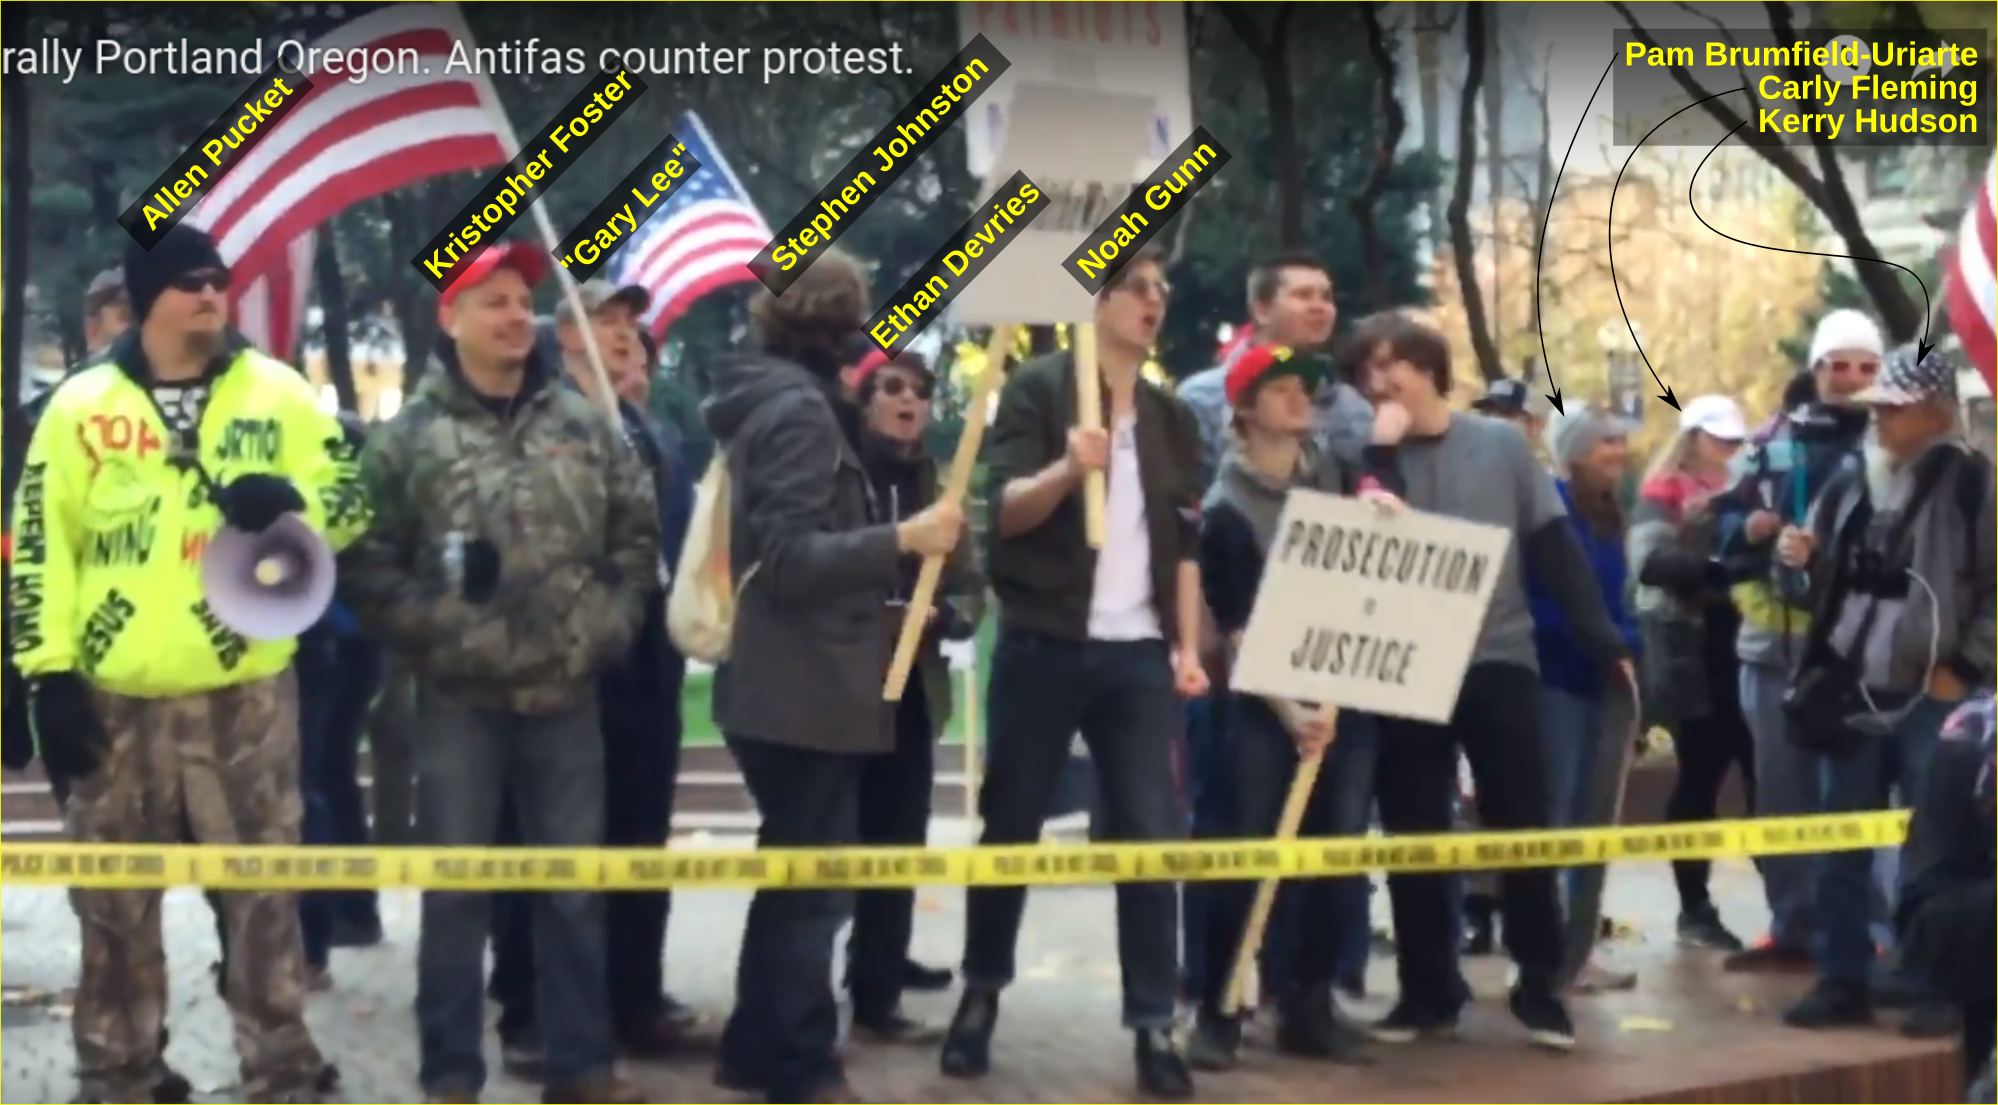 Noah Gunn hangs out with fascists at a Patriot Prayer rally